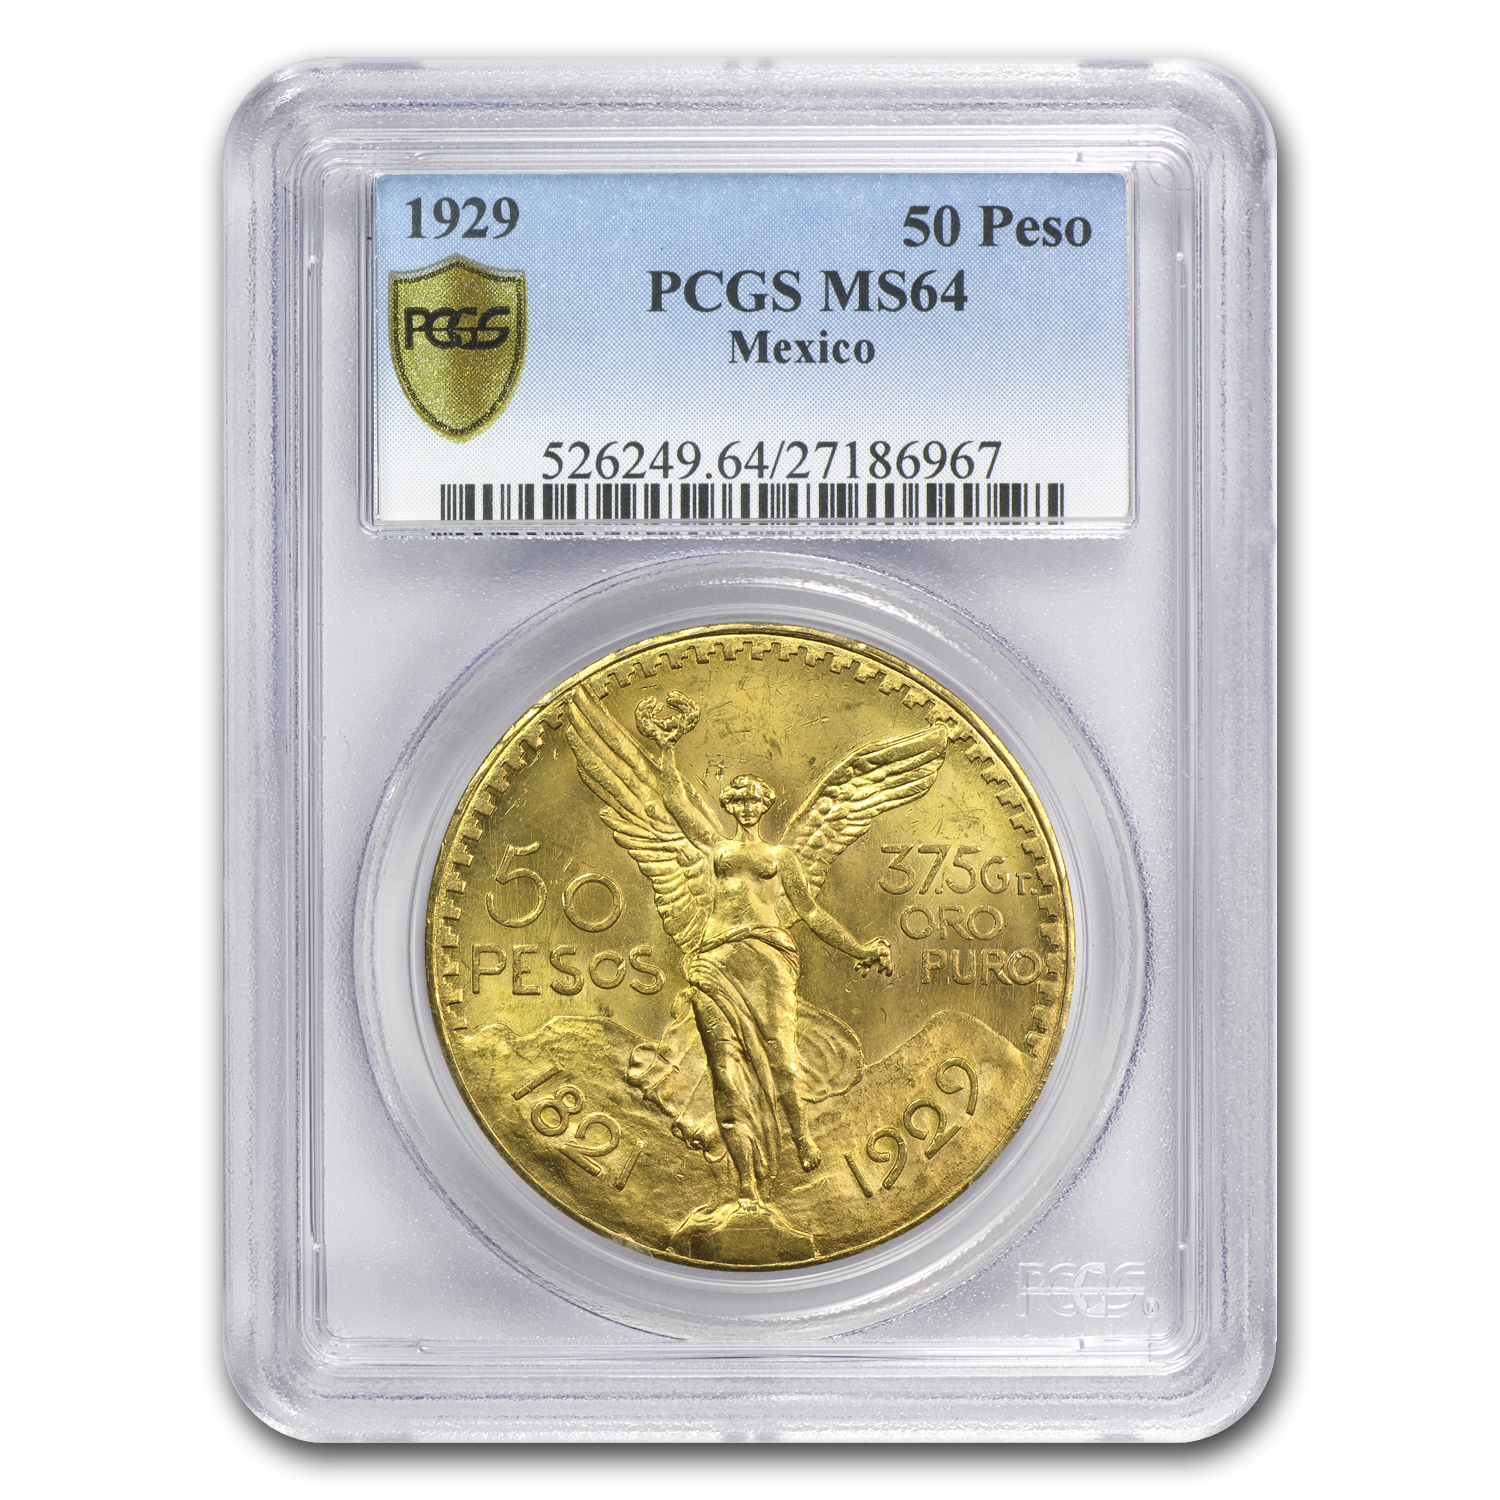 Mexico 1929 50 Pesos Gold MS-64 PCGS